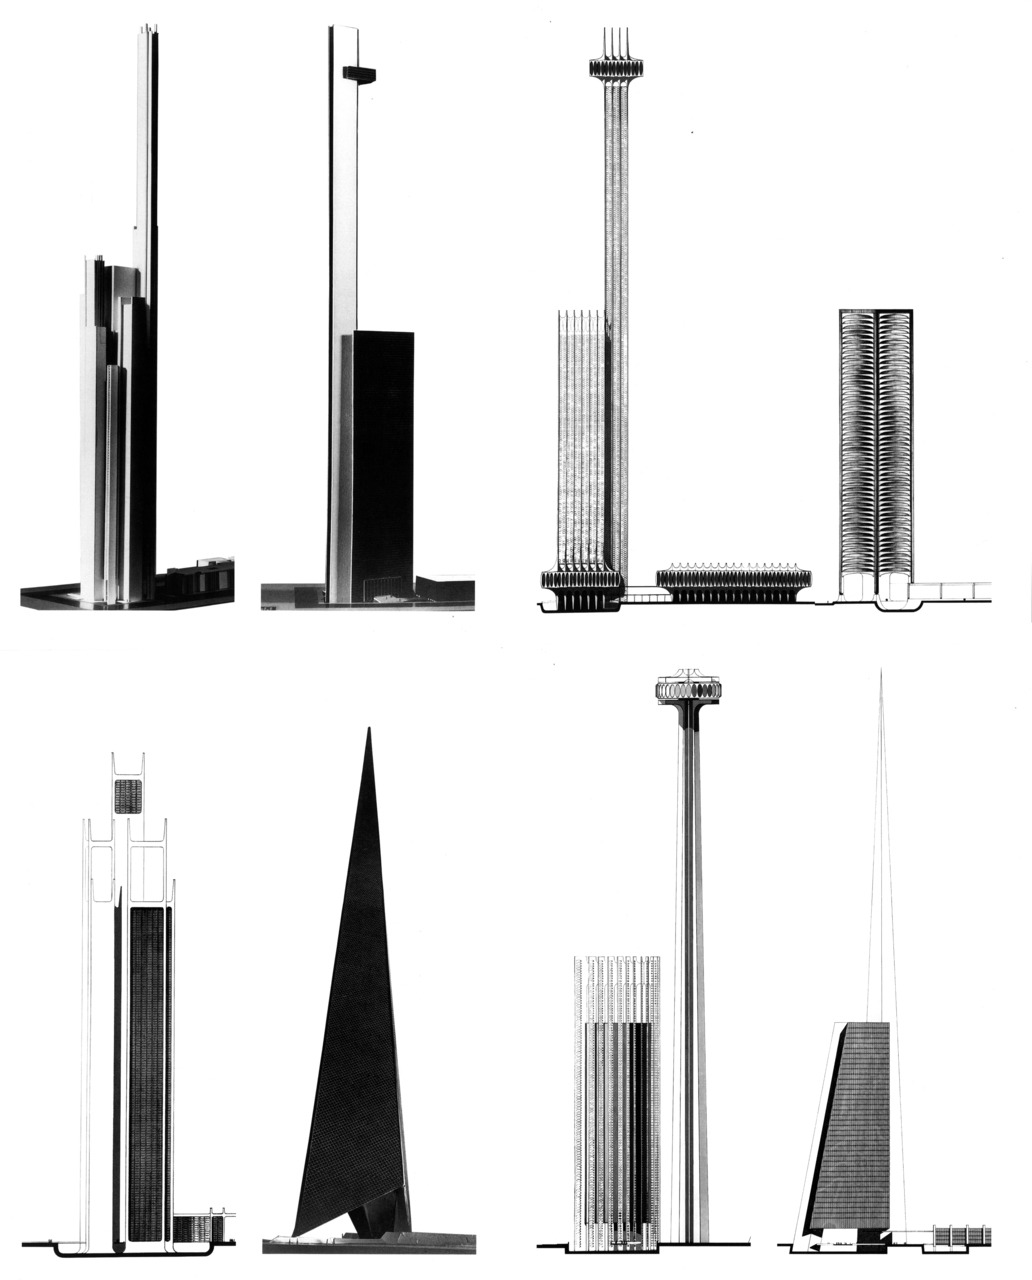 archiveofaffinities:  William Pereira, Transamerica Skyscraper, Early Schemes, San Francisco, California, 1972